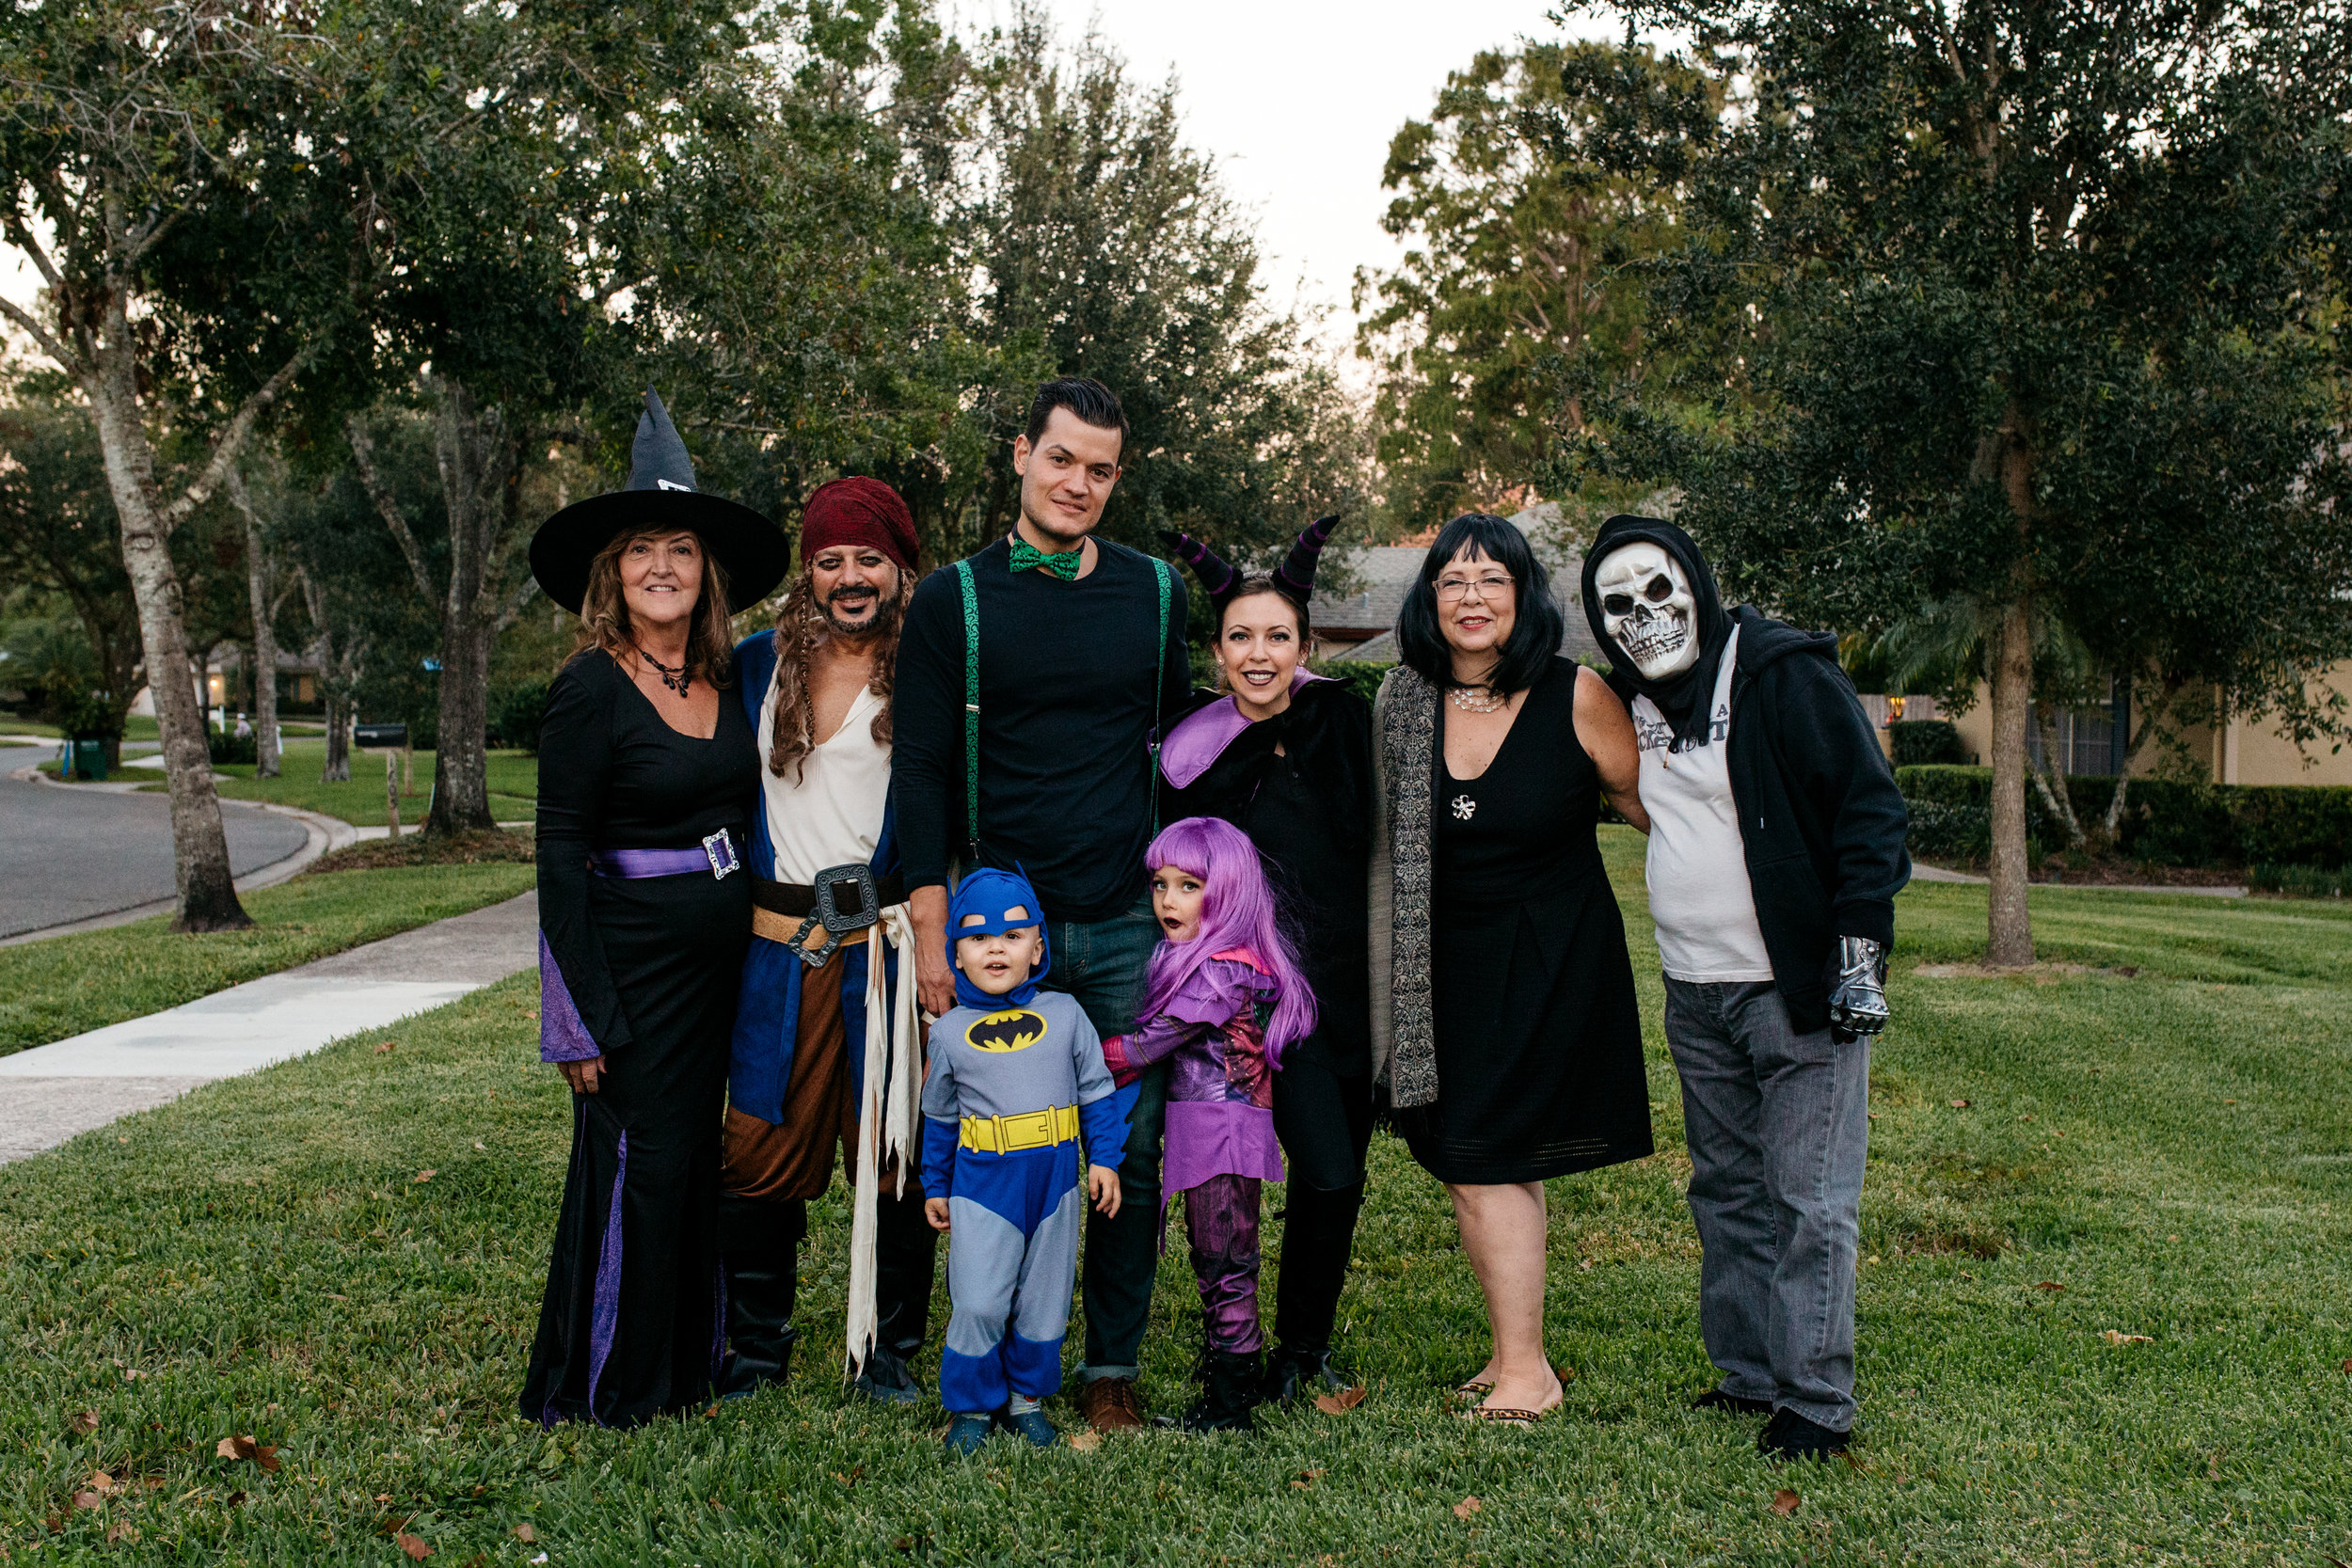 Family Portrait in Halloween Costumes Orlando Family Photographer.jpg